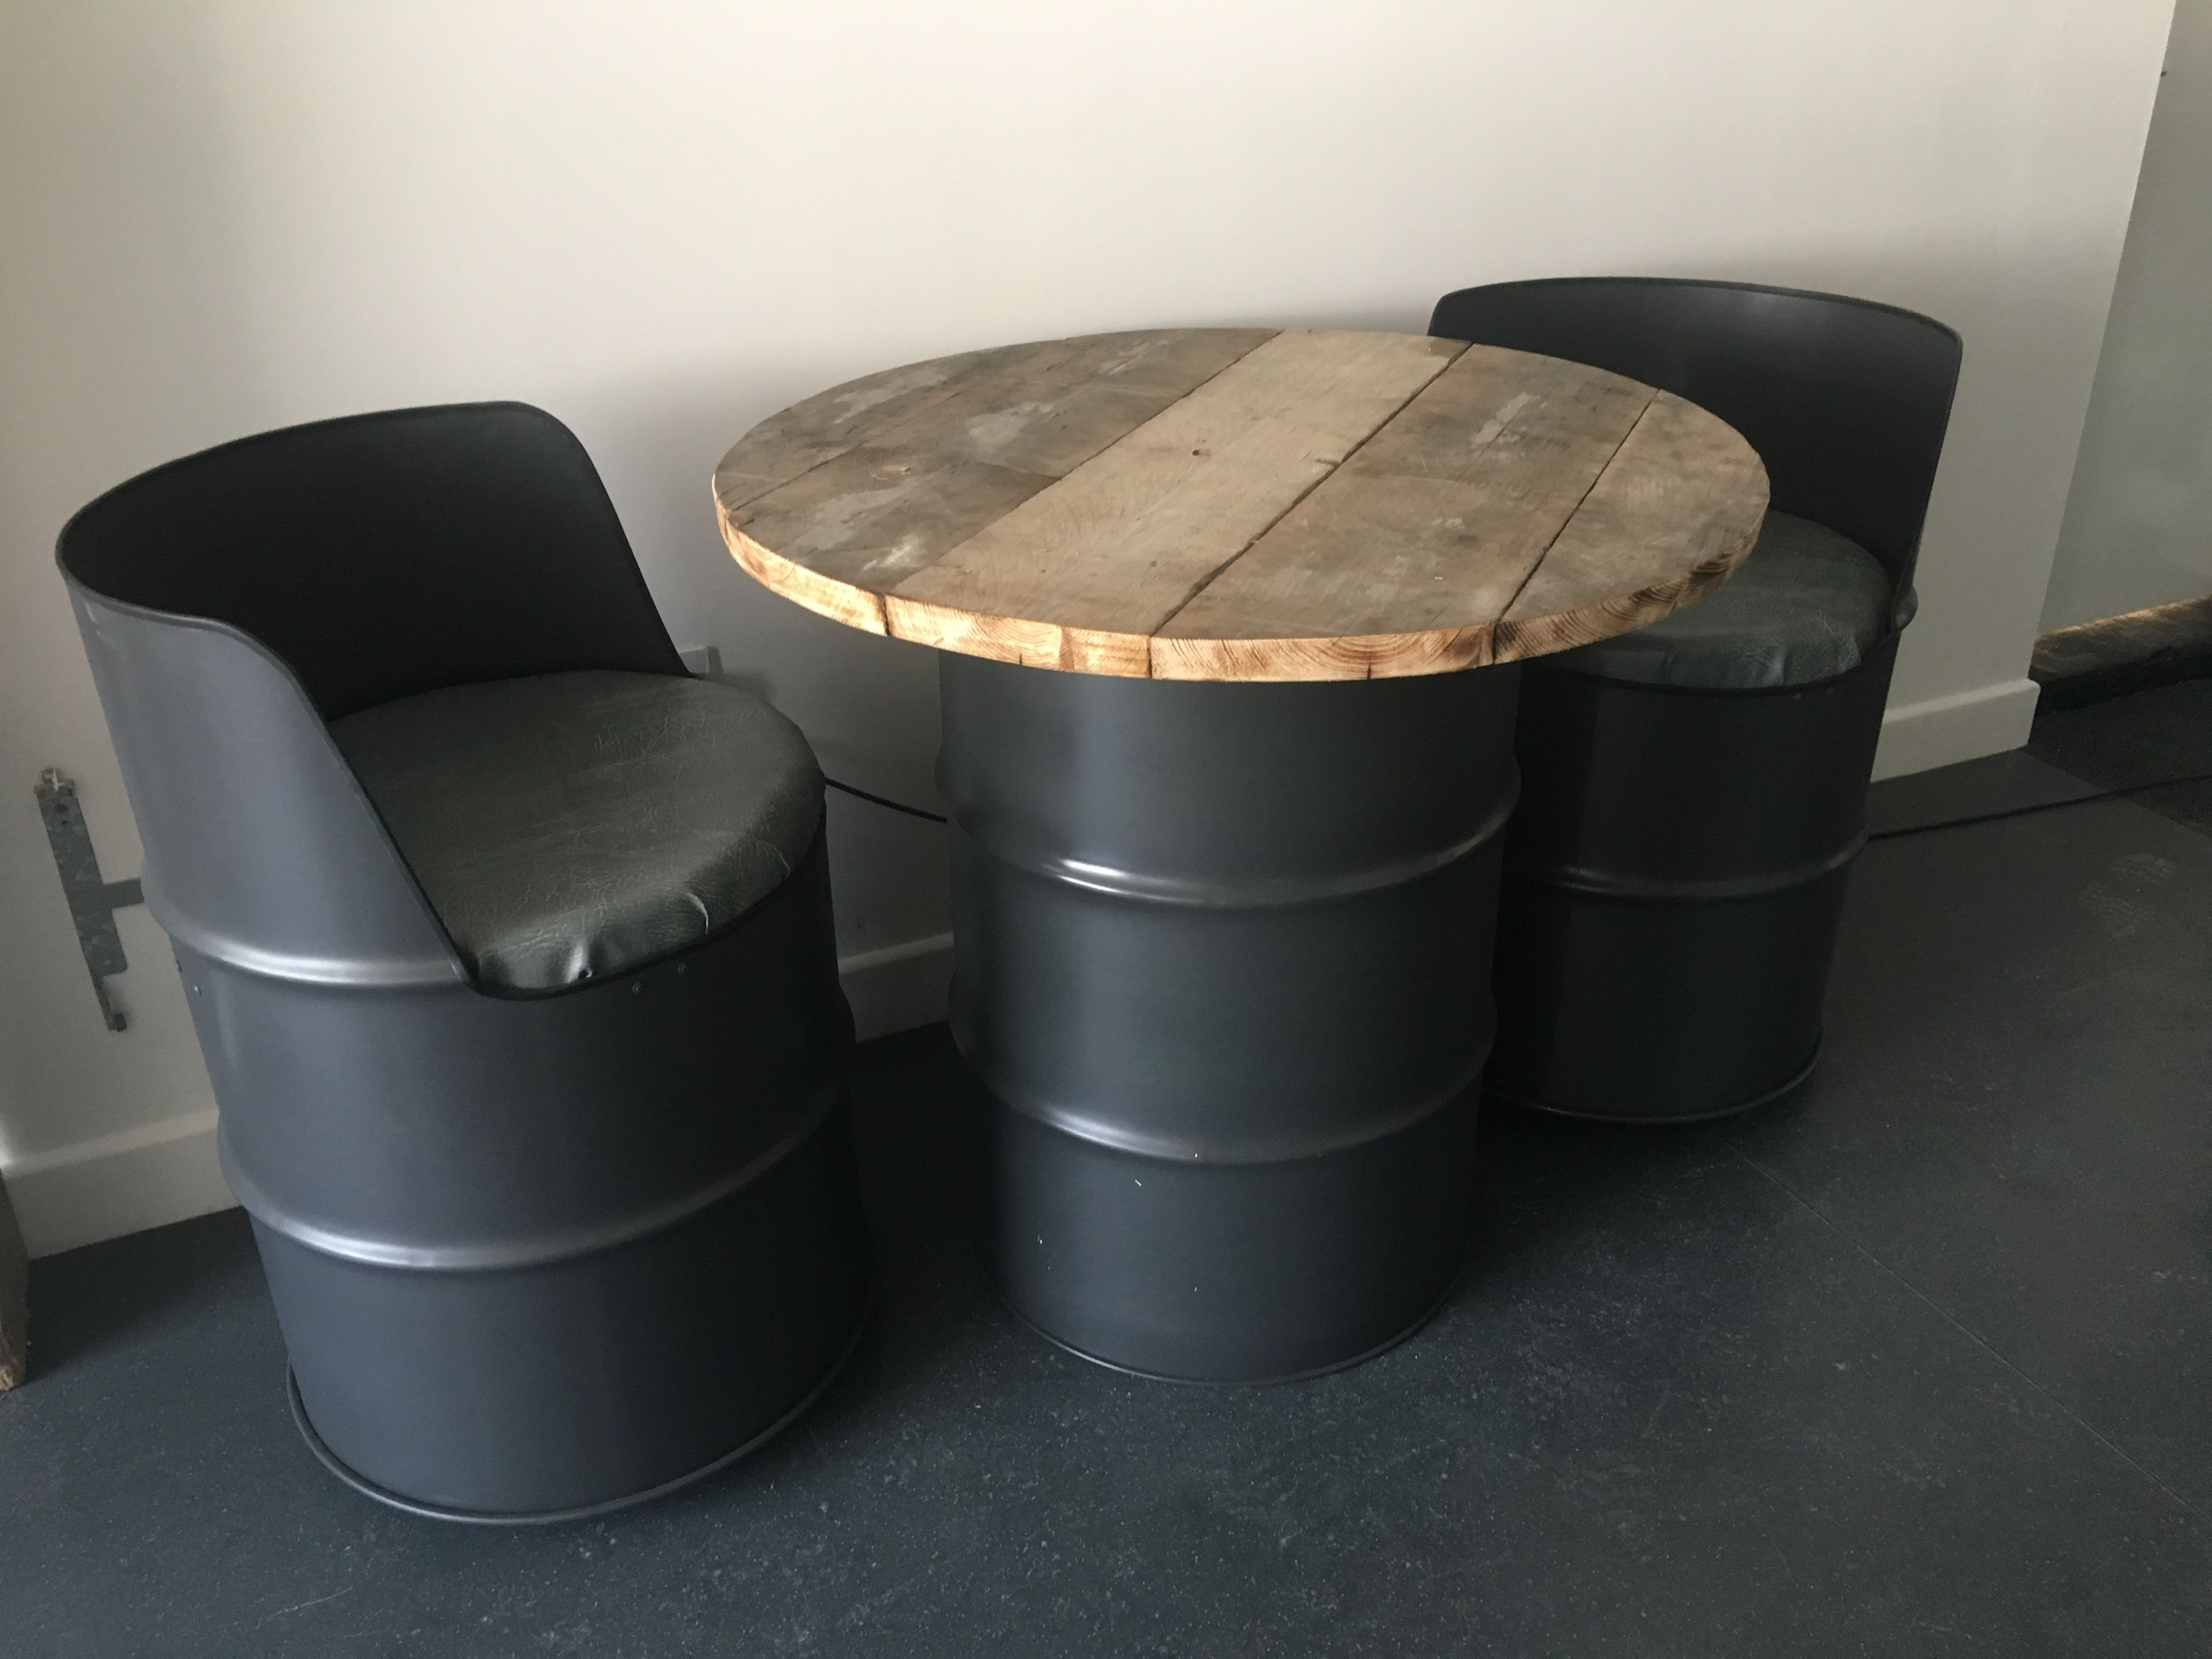 drum furniture tong oil drum seat table furniture recycled oil drums ideas